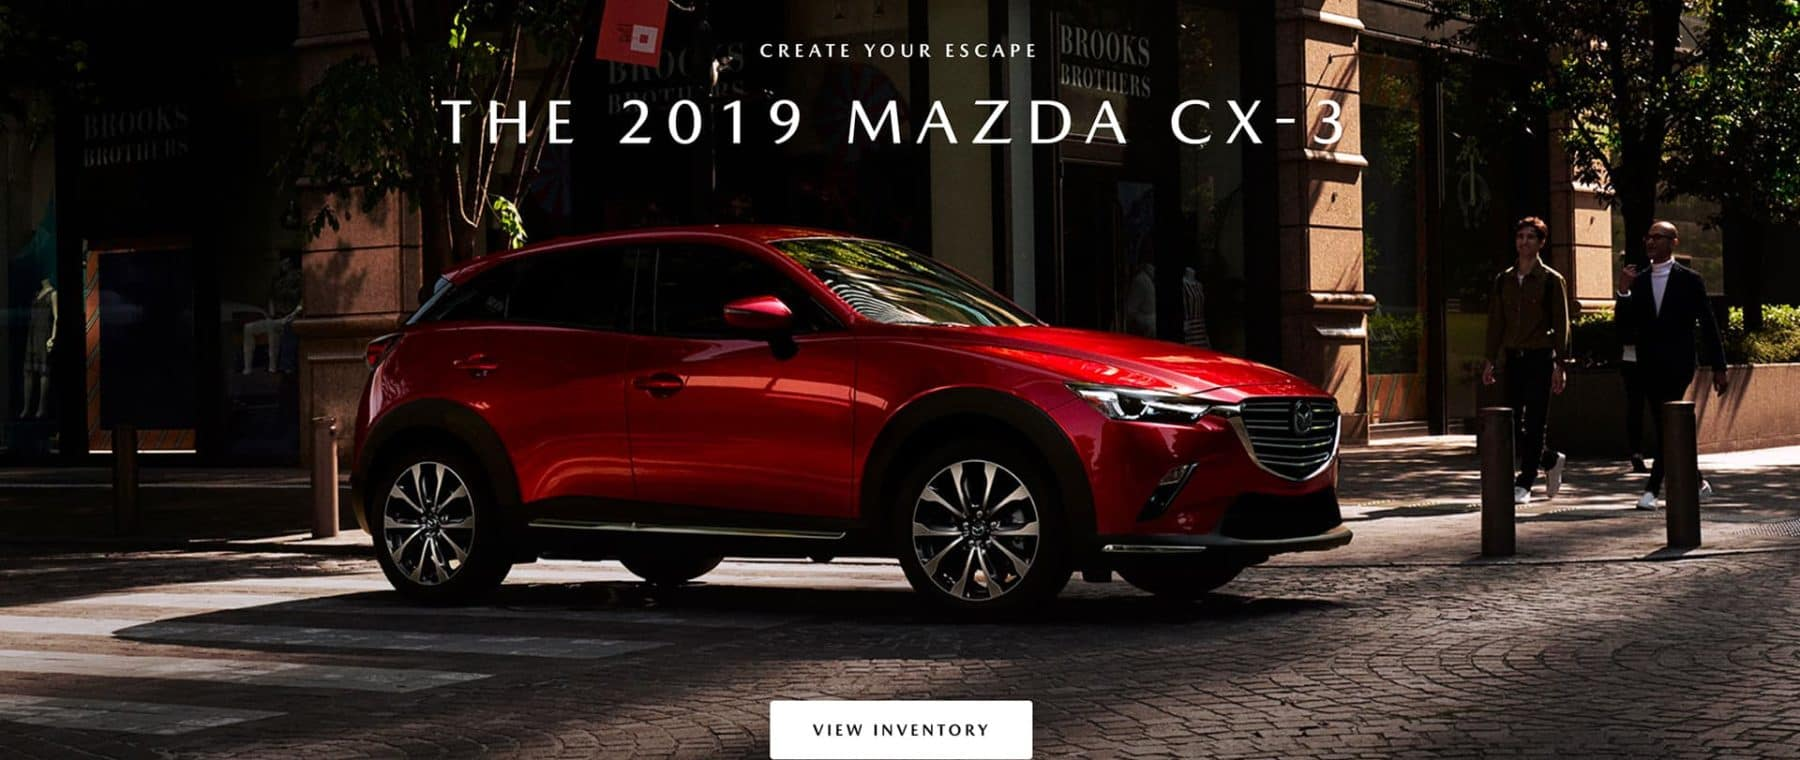 Red 2019 Mazda CX-3 at a brick street city intersection